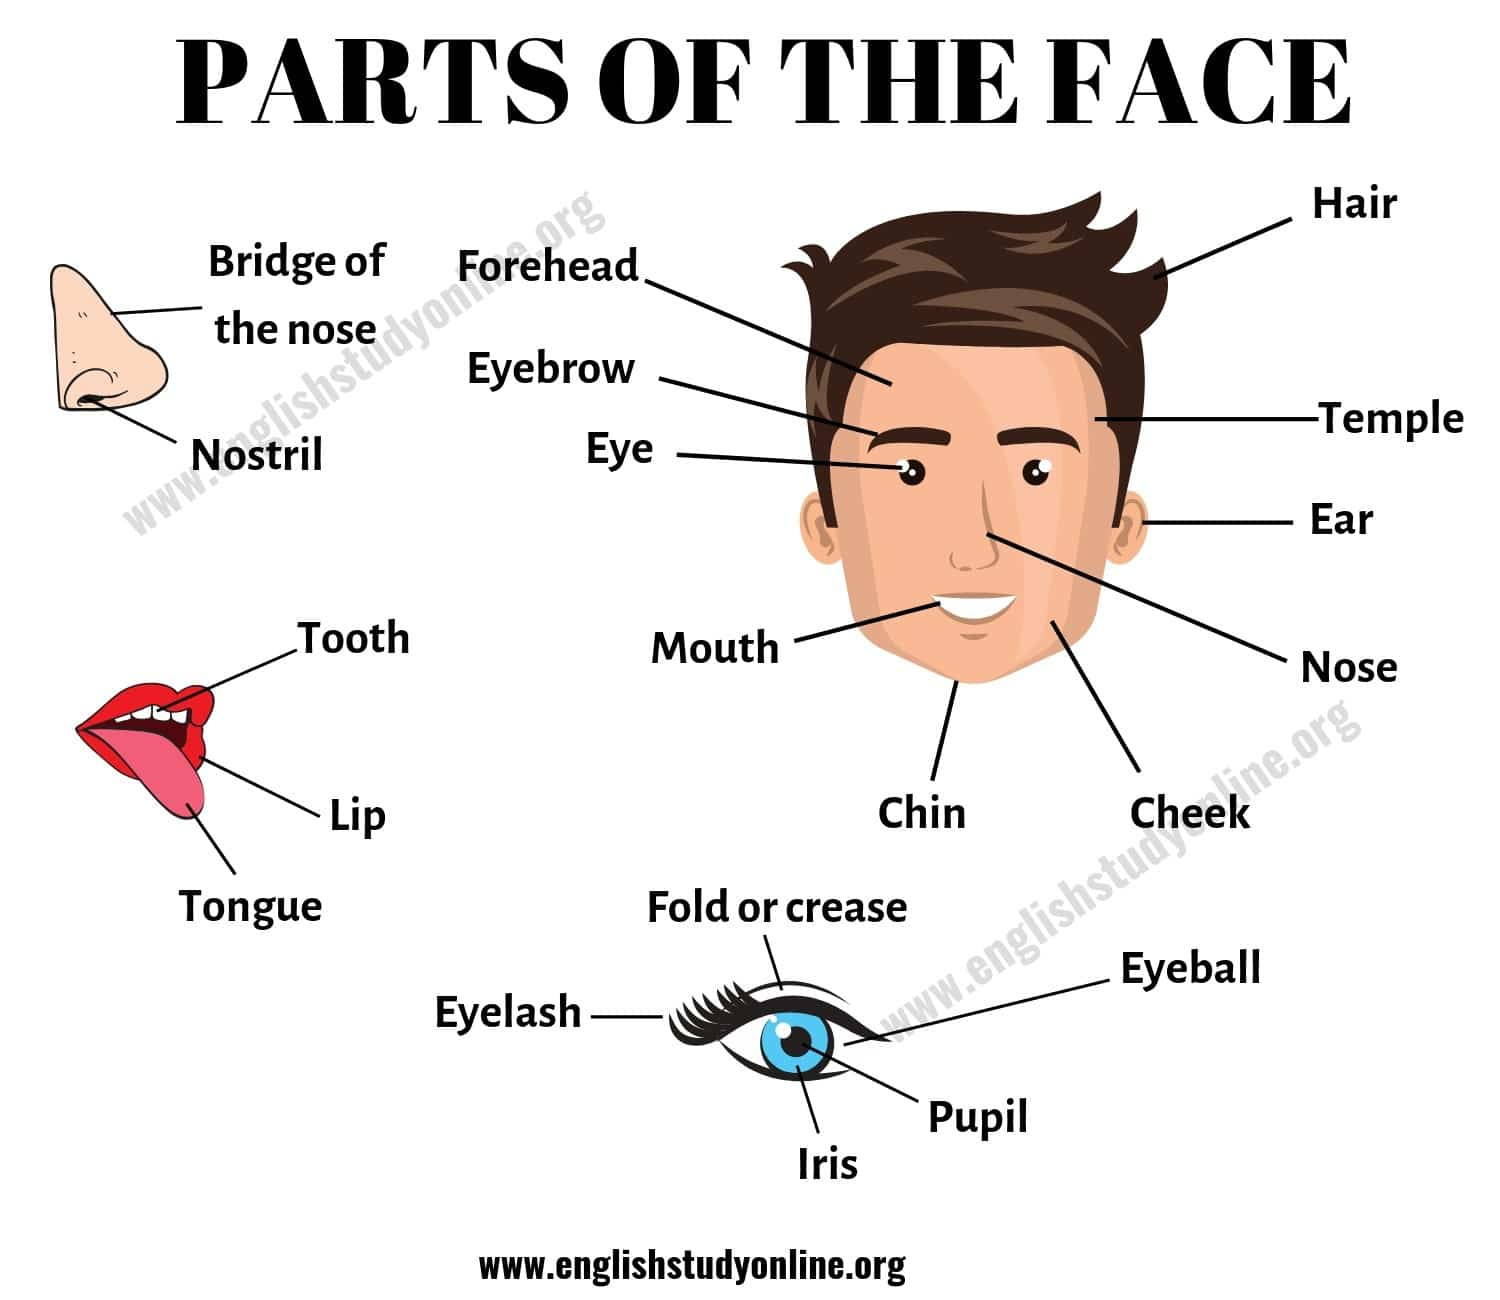 Parts of the Face: List of Useful Face Parts Vocabulary in English 2